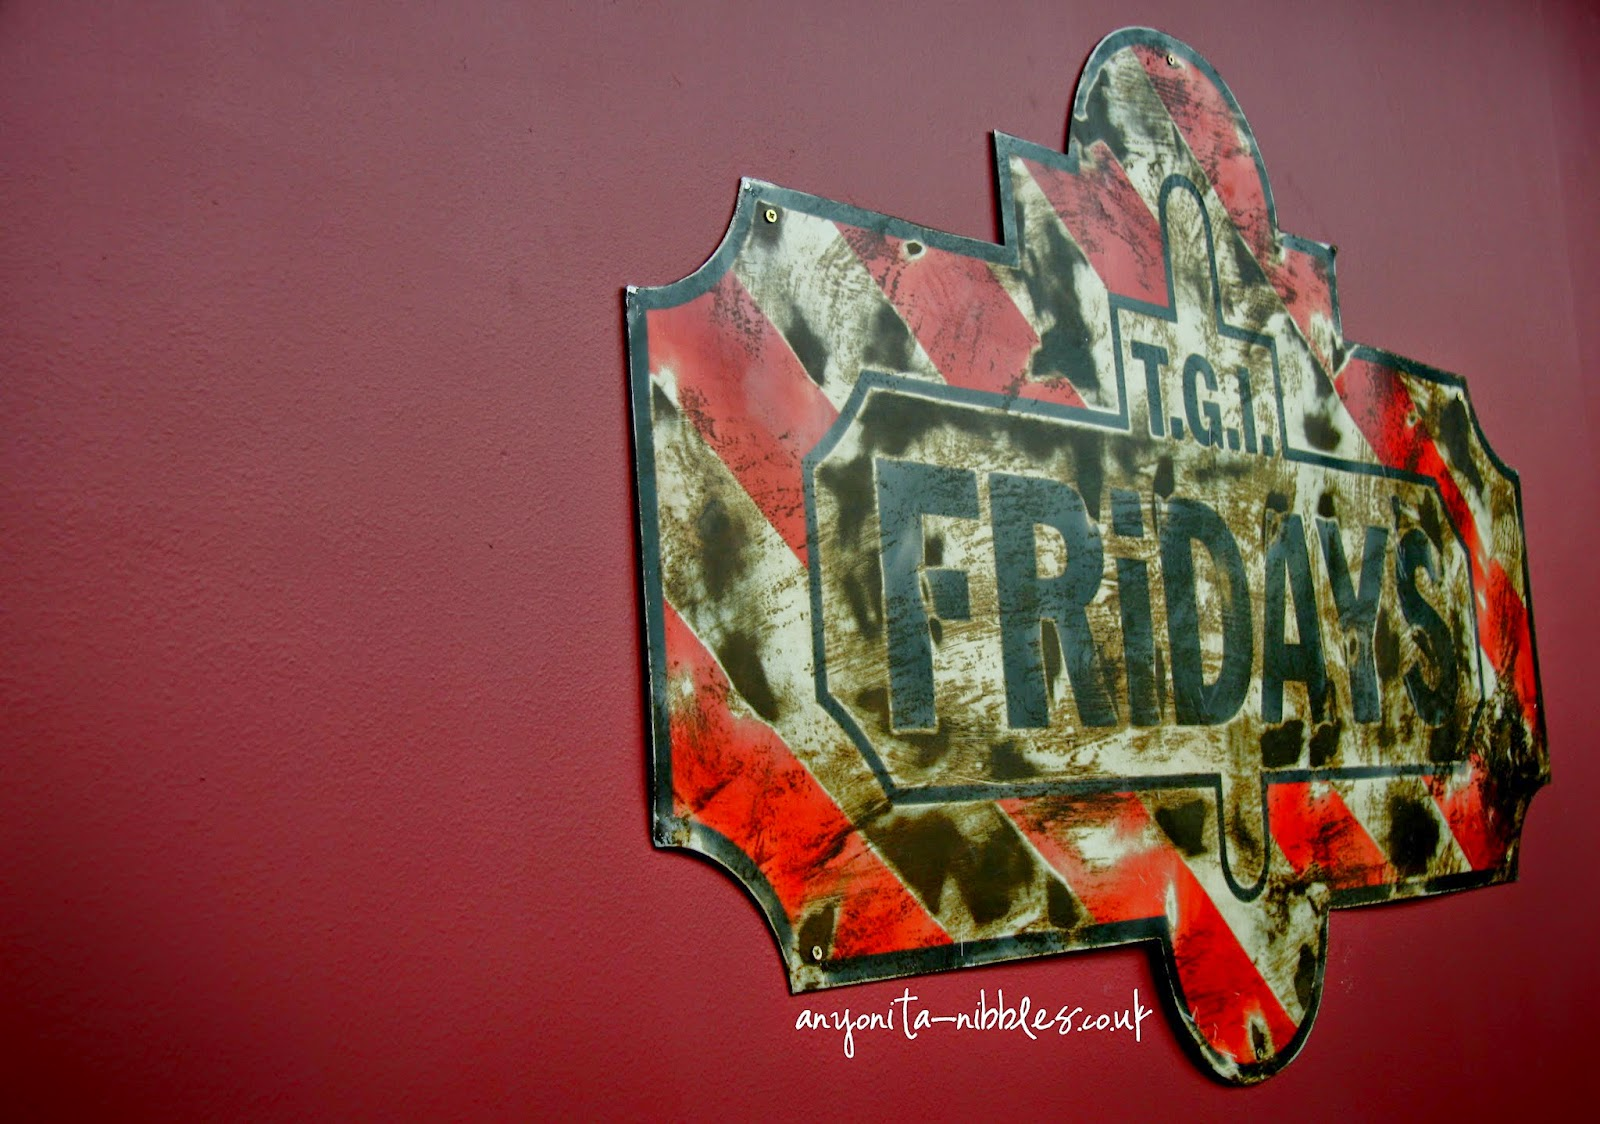 TGI Friday's: quirky decor, good food, excellent staff | Anyonita-nibbles.co.uk